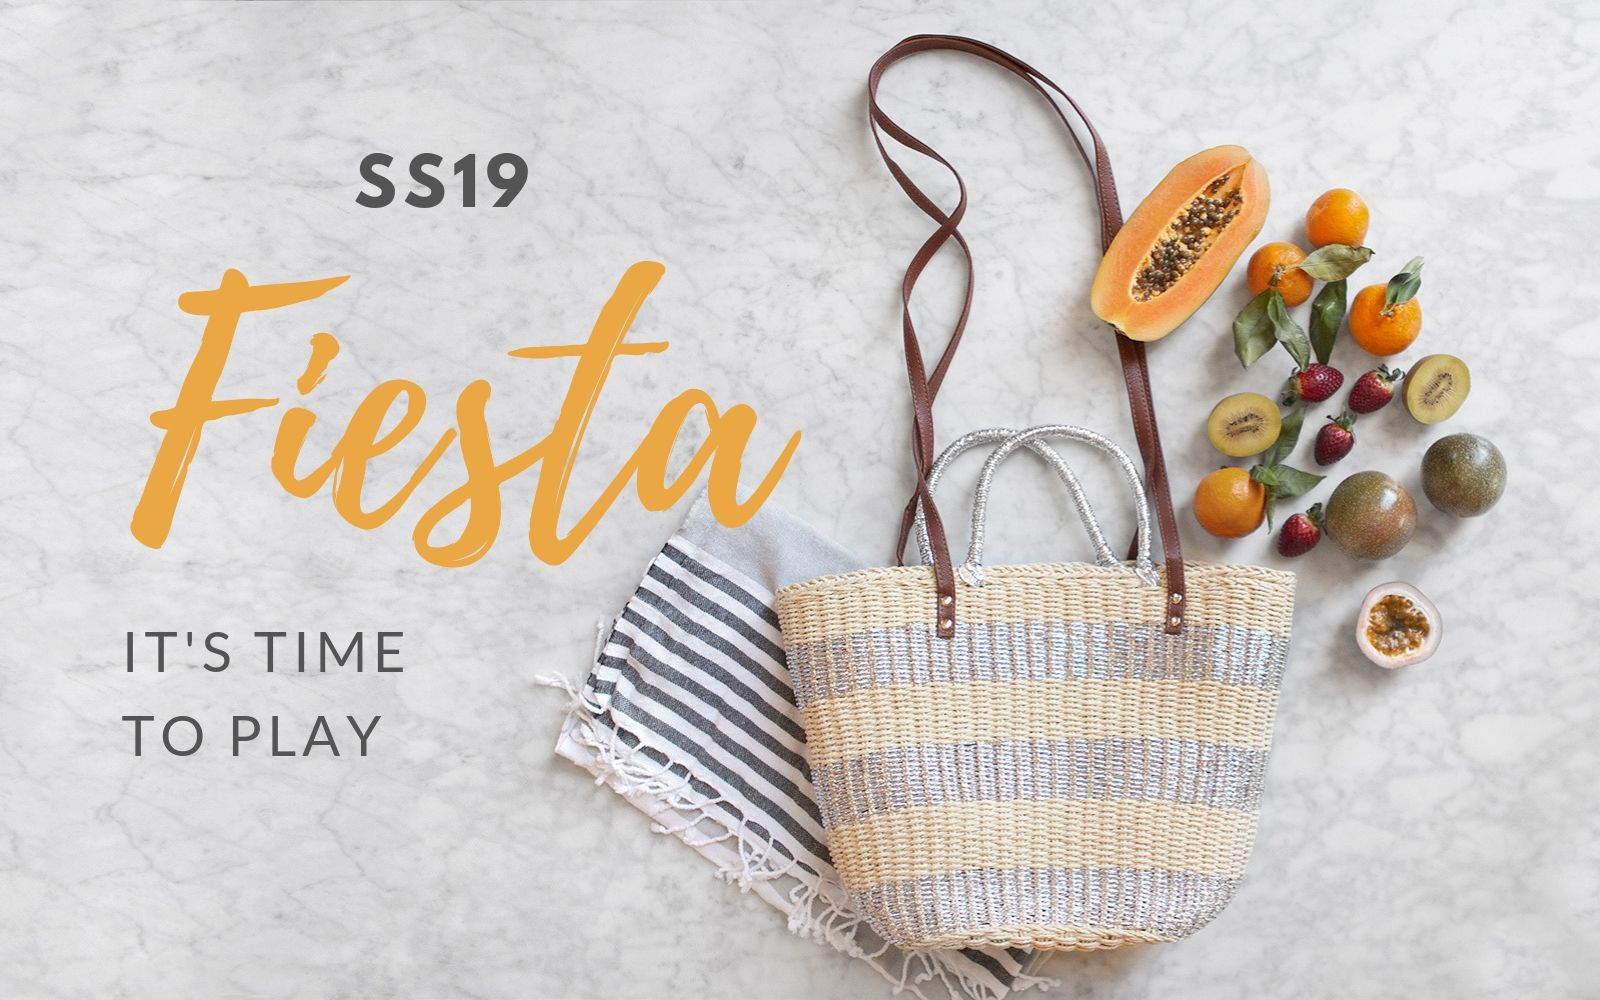 SS19 Collection - Fiesta - Chuchka